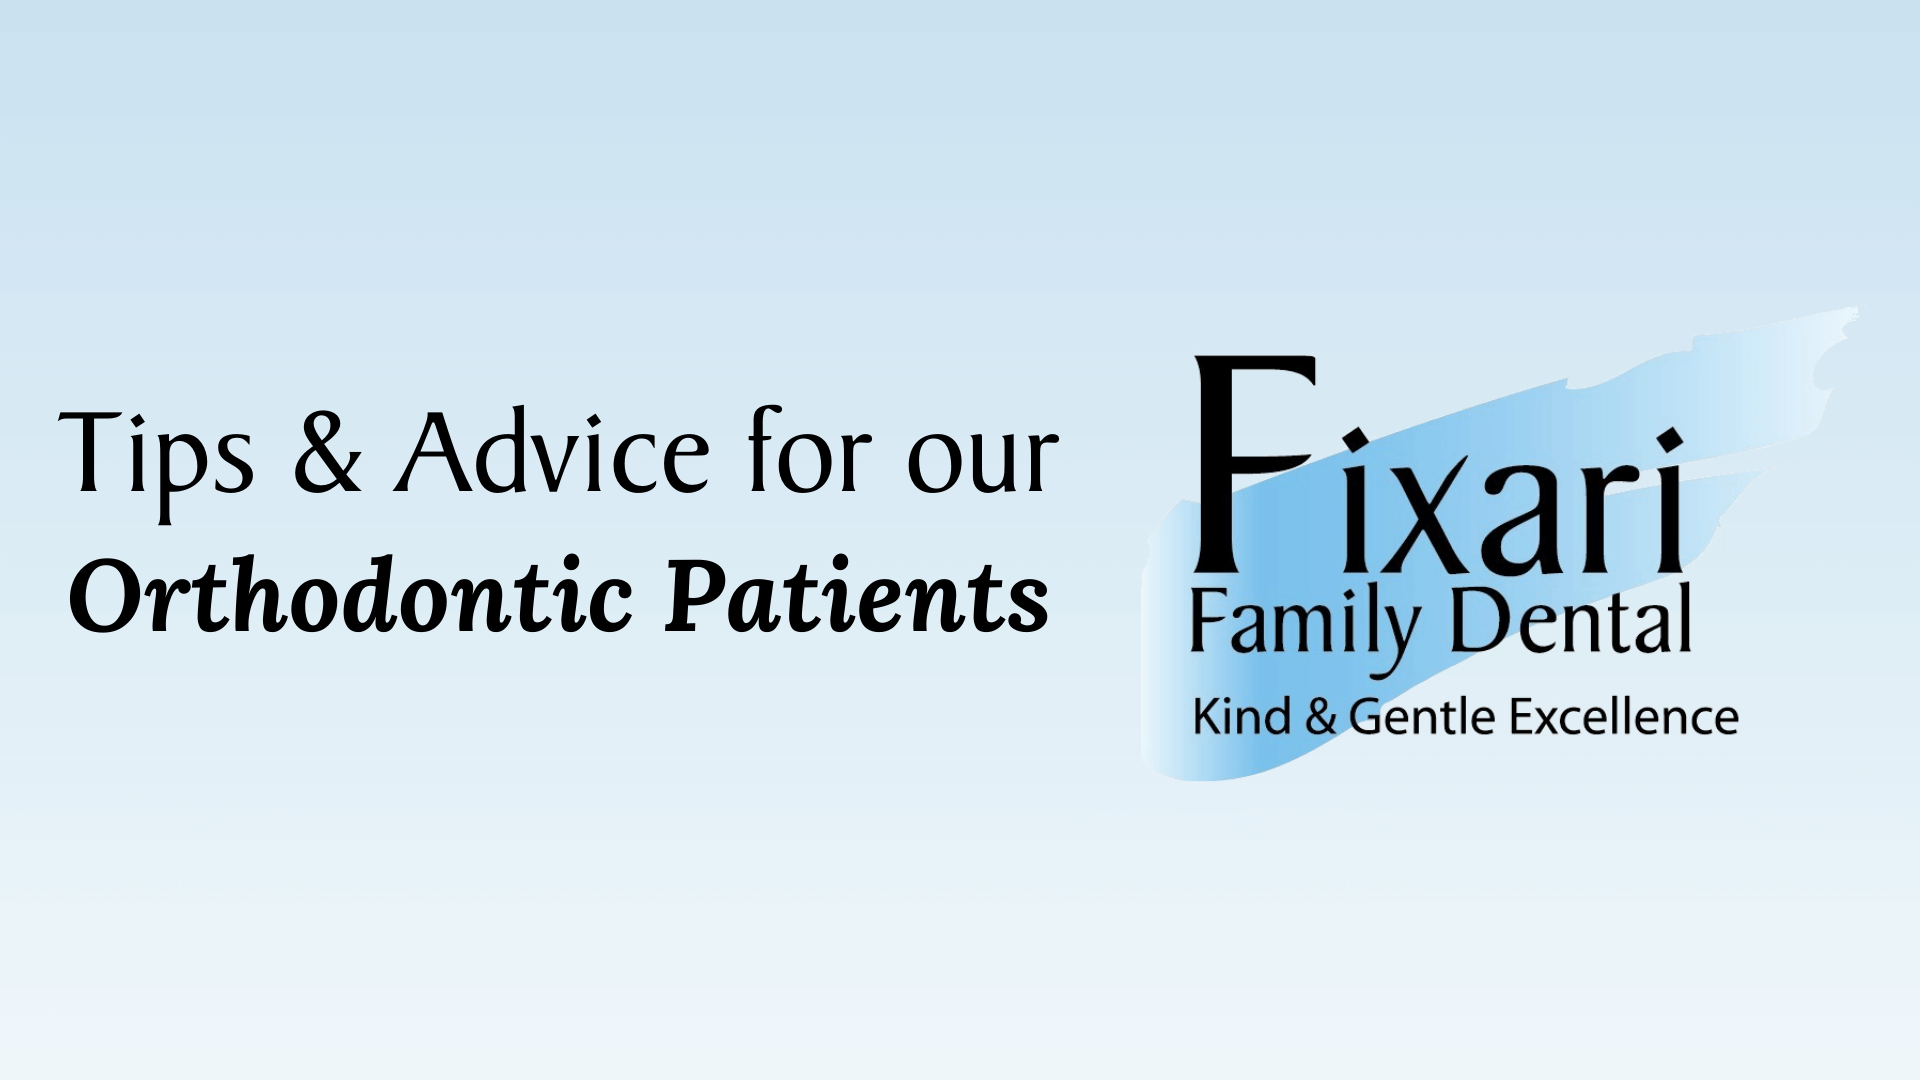 tips for orthodontic patients